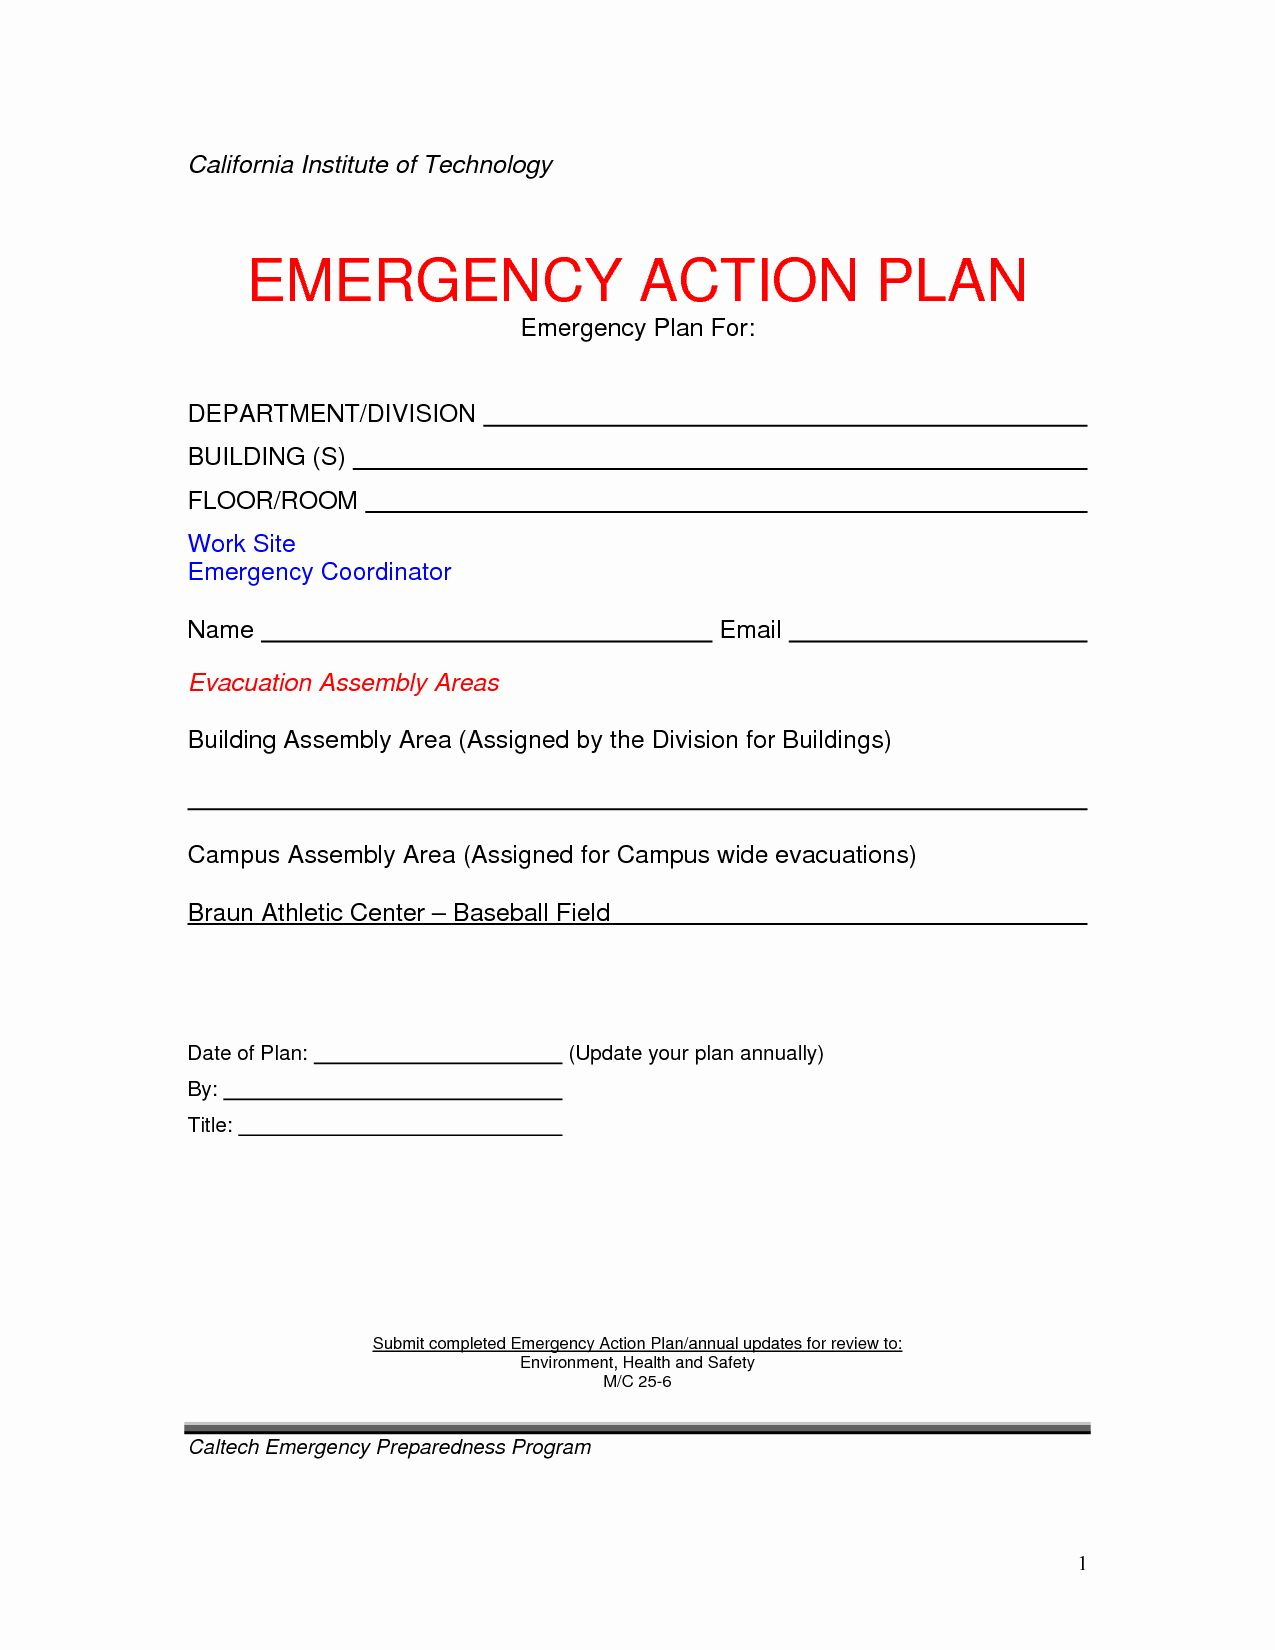 Fire Safety Plan Template Unique Emergency Action Plan Template In